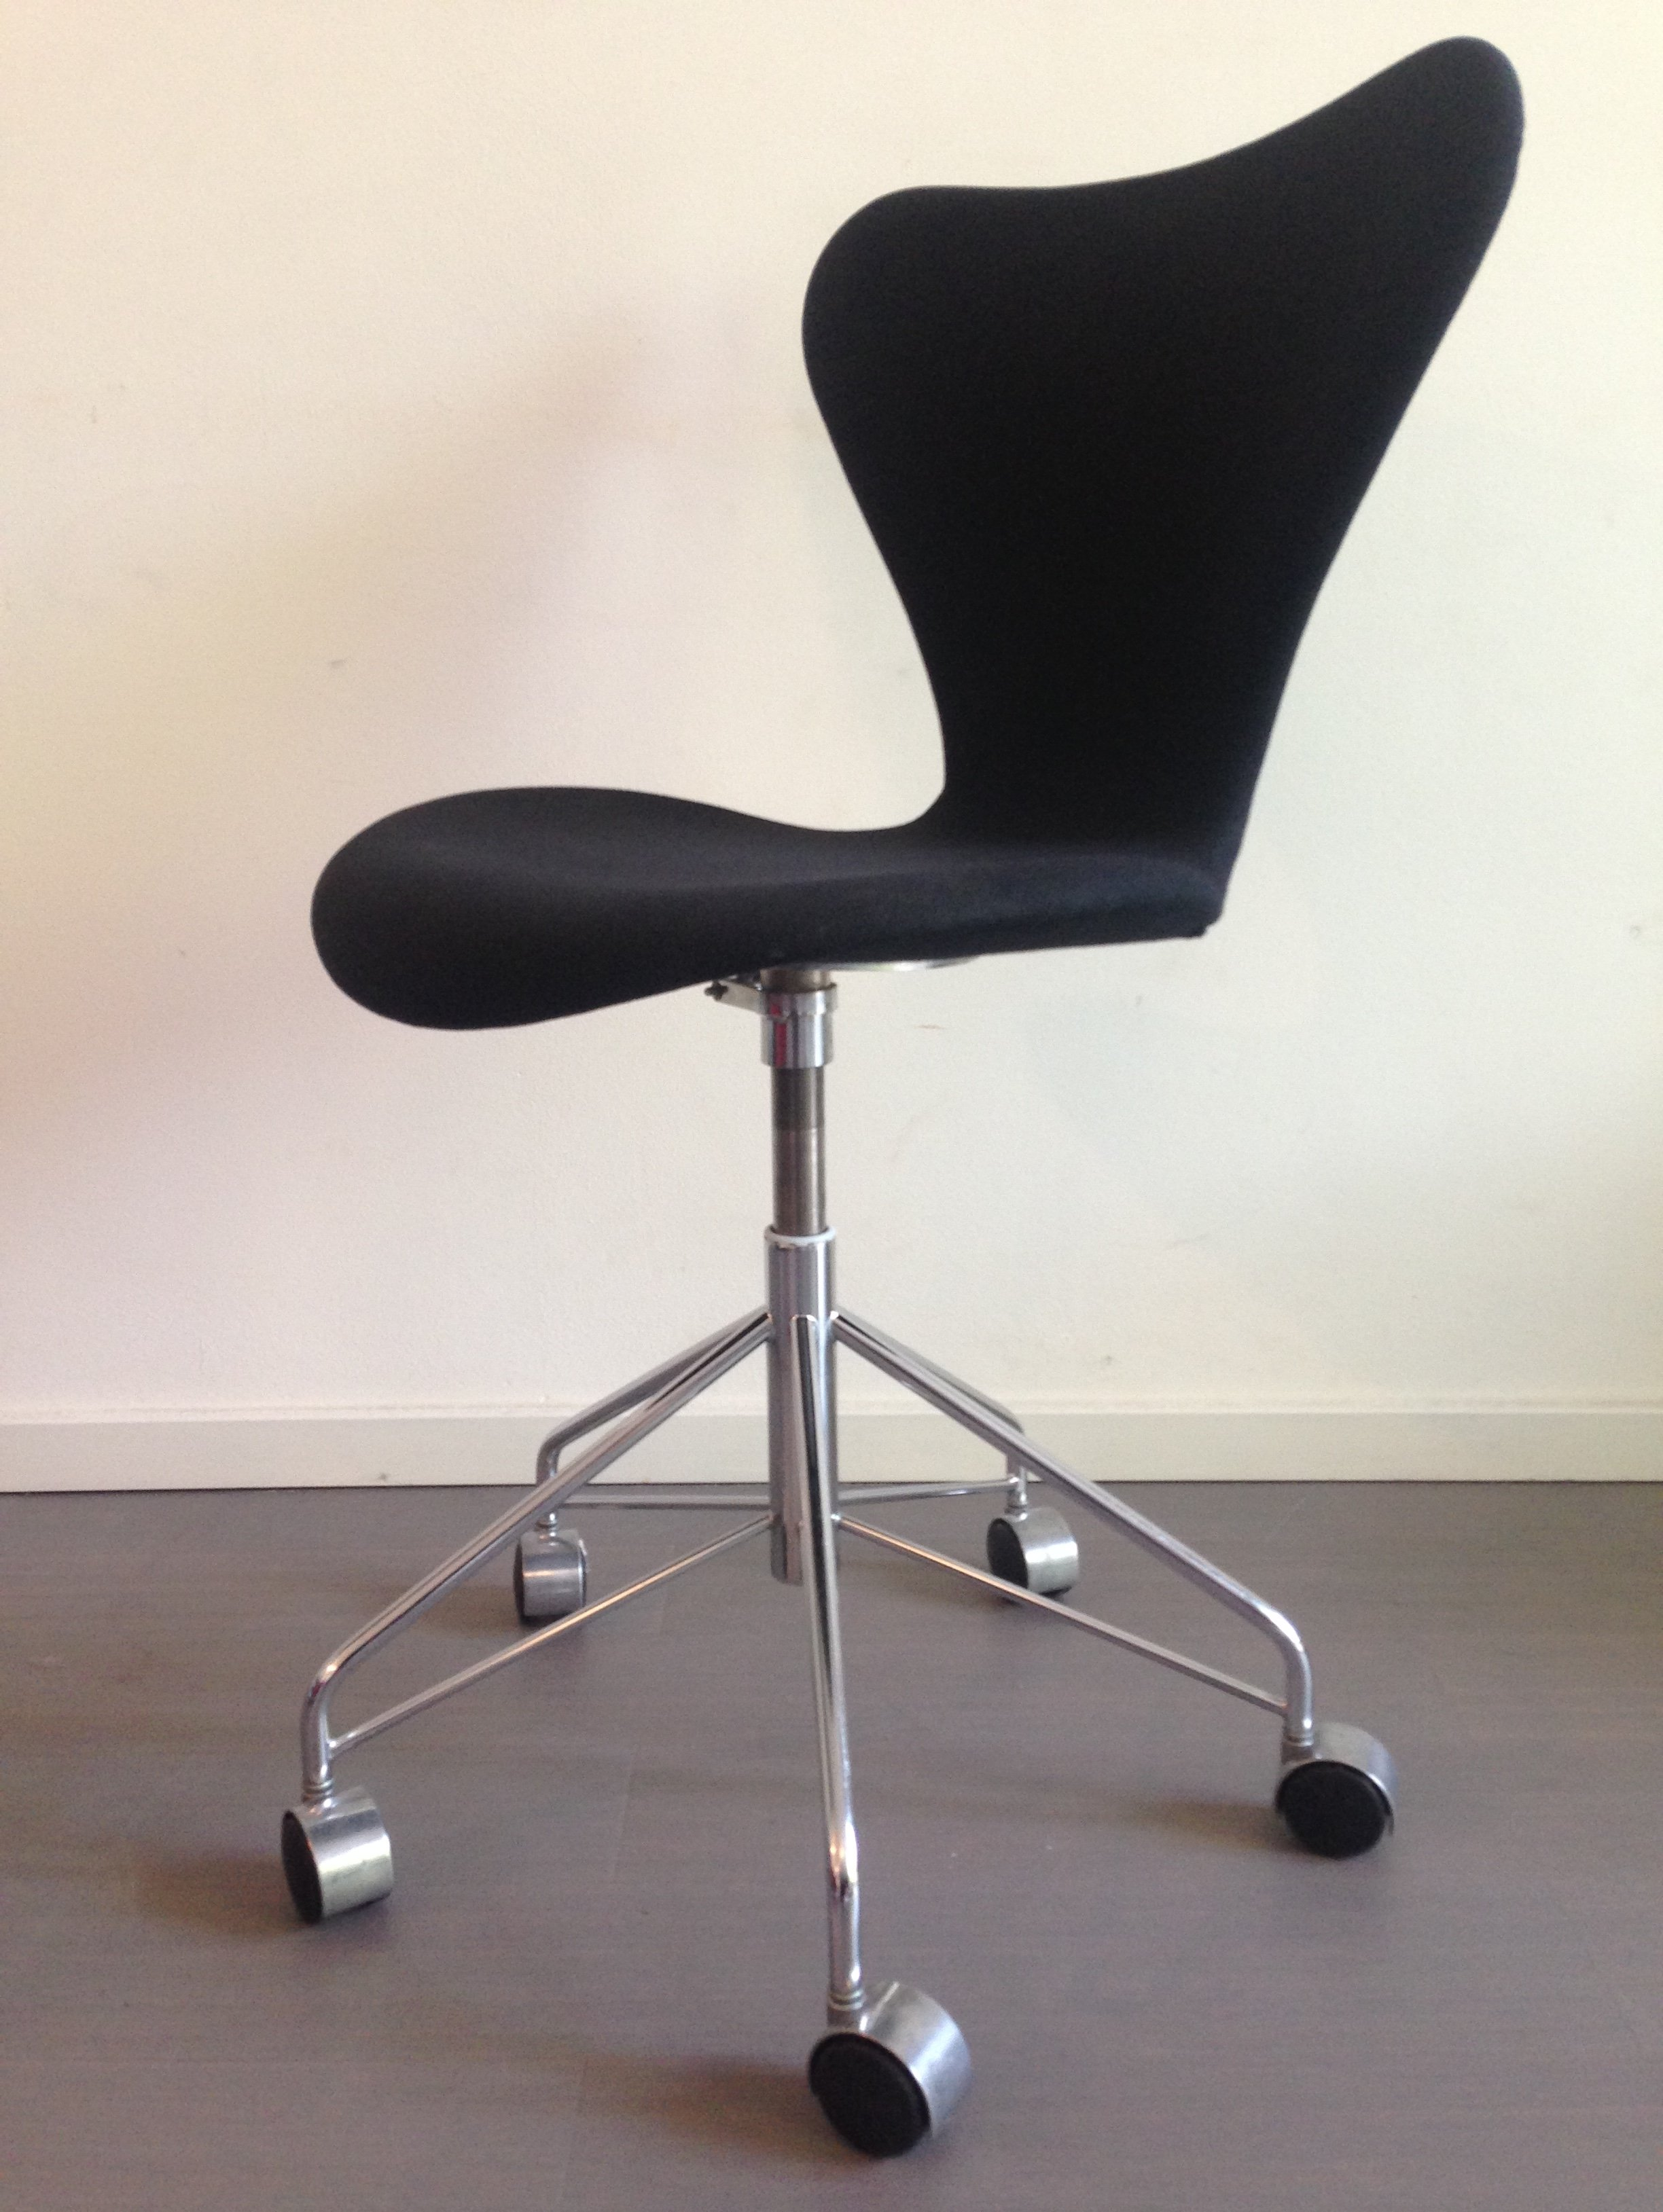 2 X Model 3117 Office Chair By Arne Jacobsen For Fritz Hansen 1960s